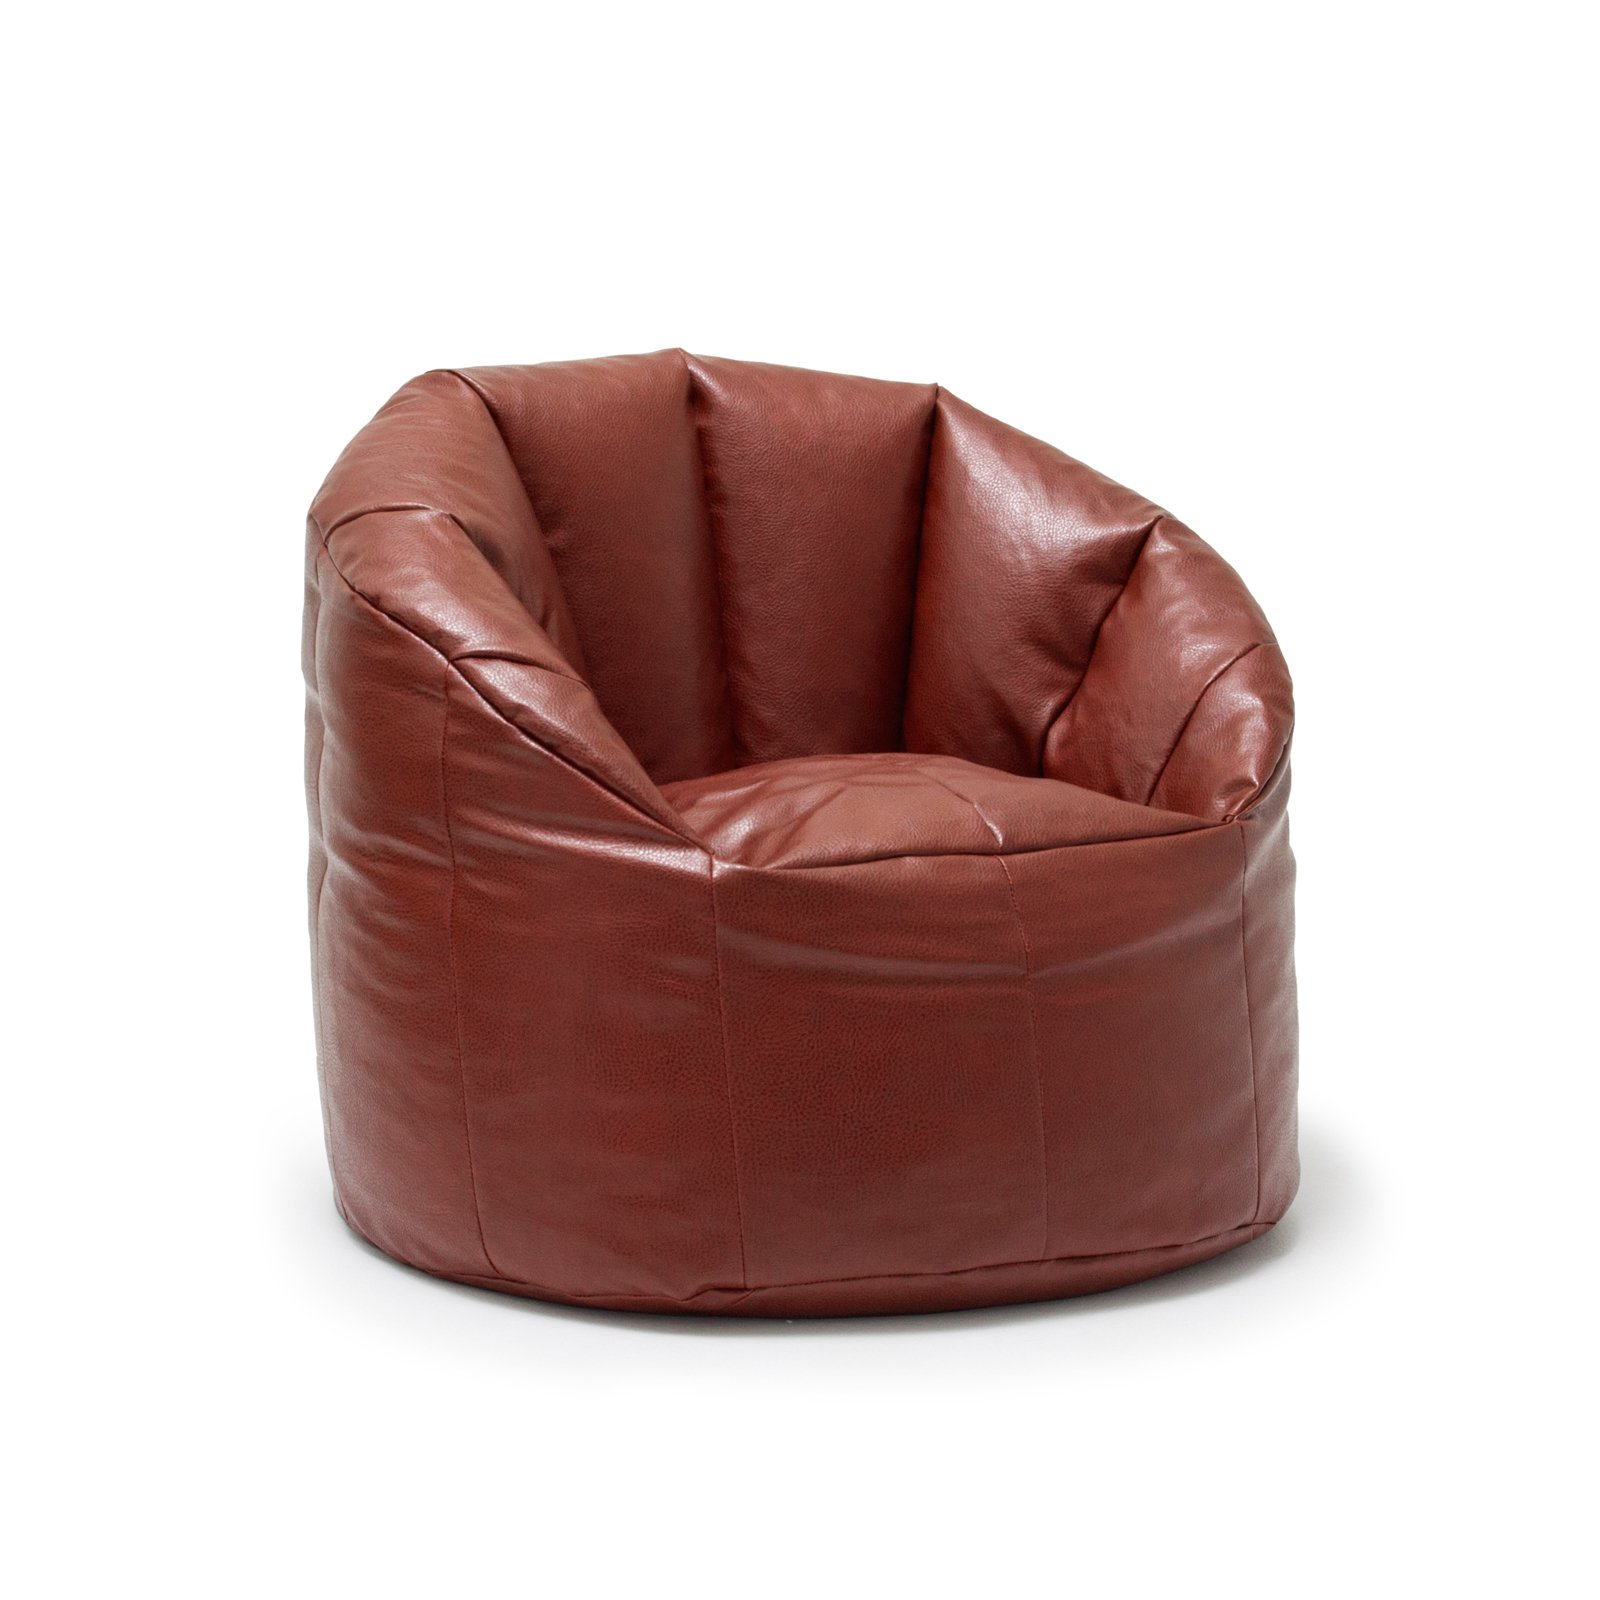 Big Joe Milano Bean Bag Vegan Faux Leather Chair